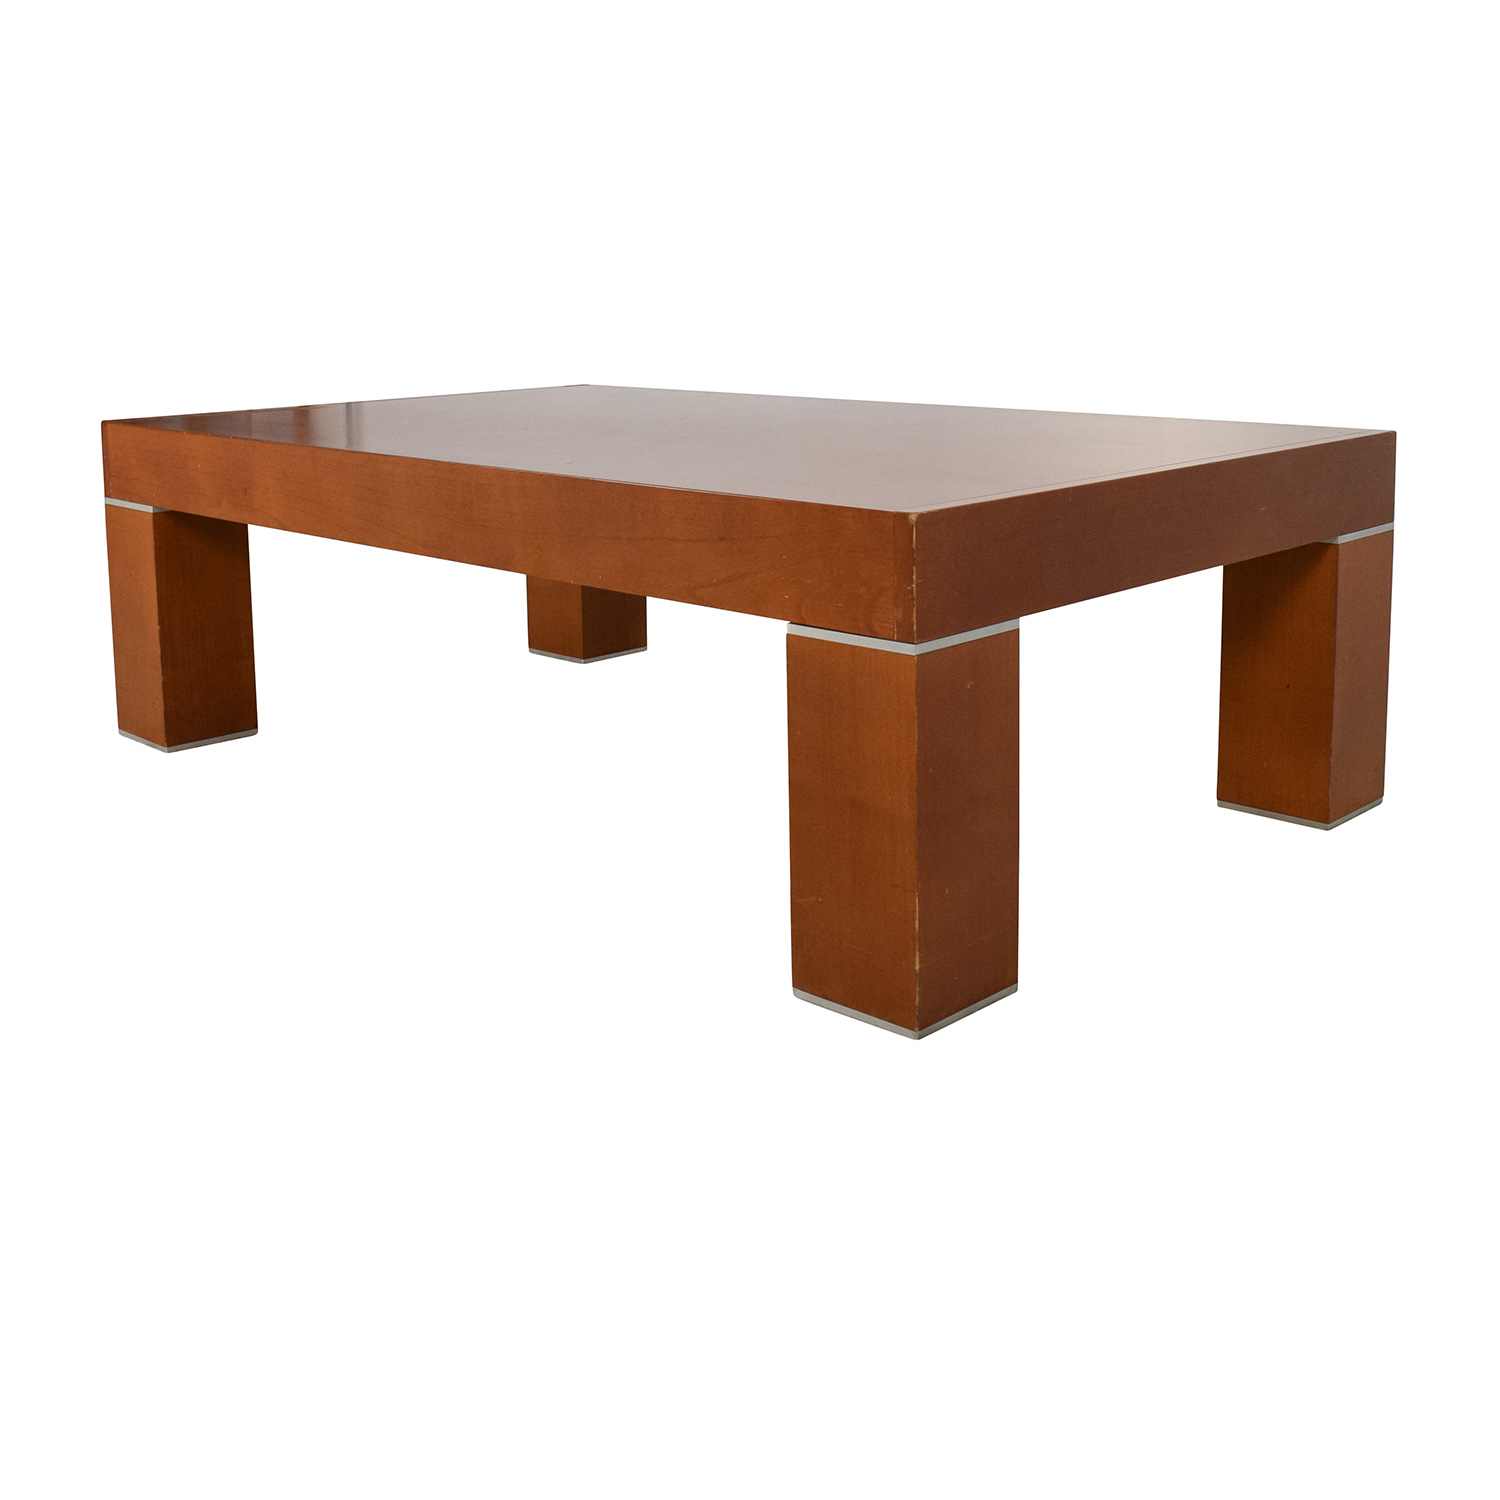 86 off roche bobois paris roche bobois paris wood coffee table tables Roche bobois coffee table